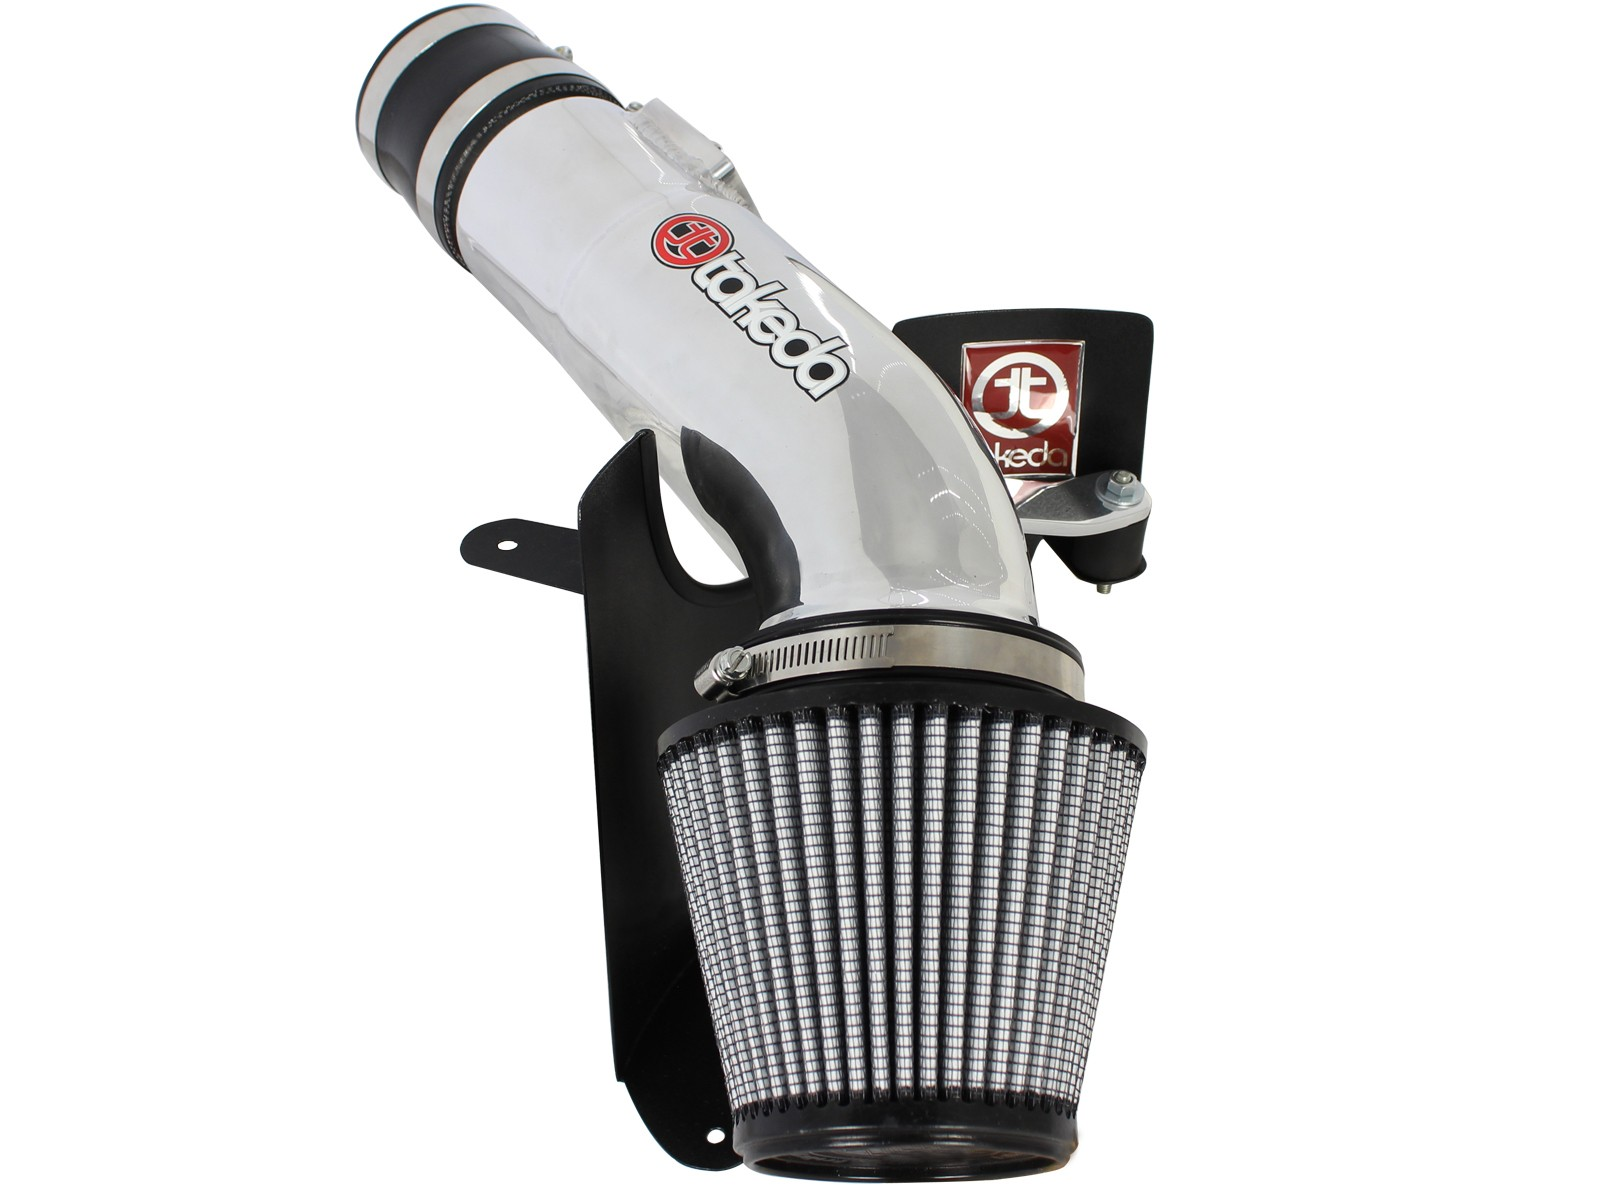 aFe Power Takeda Cold Air Intake Kit For 13-17 Accord 14-19 TLX 2.4L